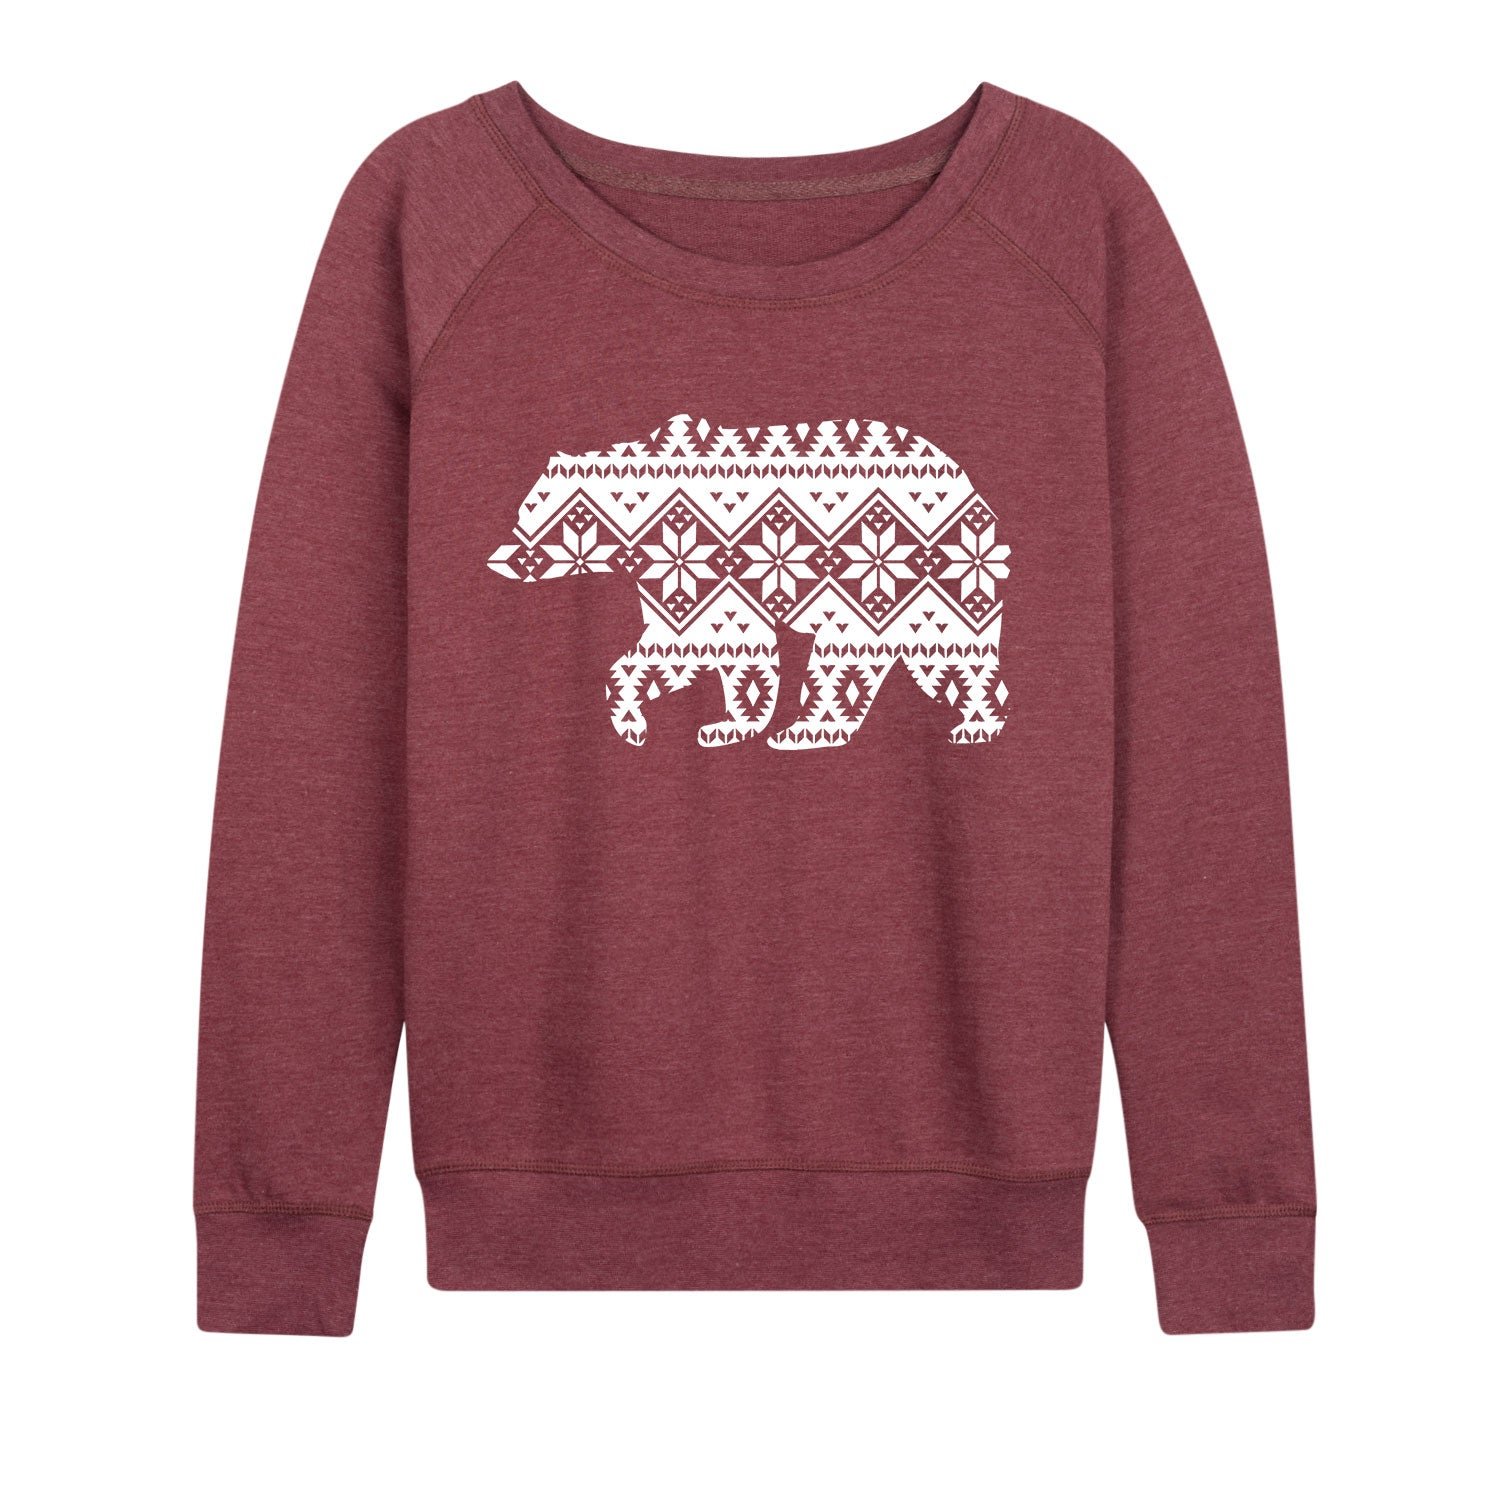 Fair Isle Snowflake Bear - Women's Slouchy